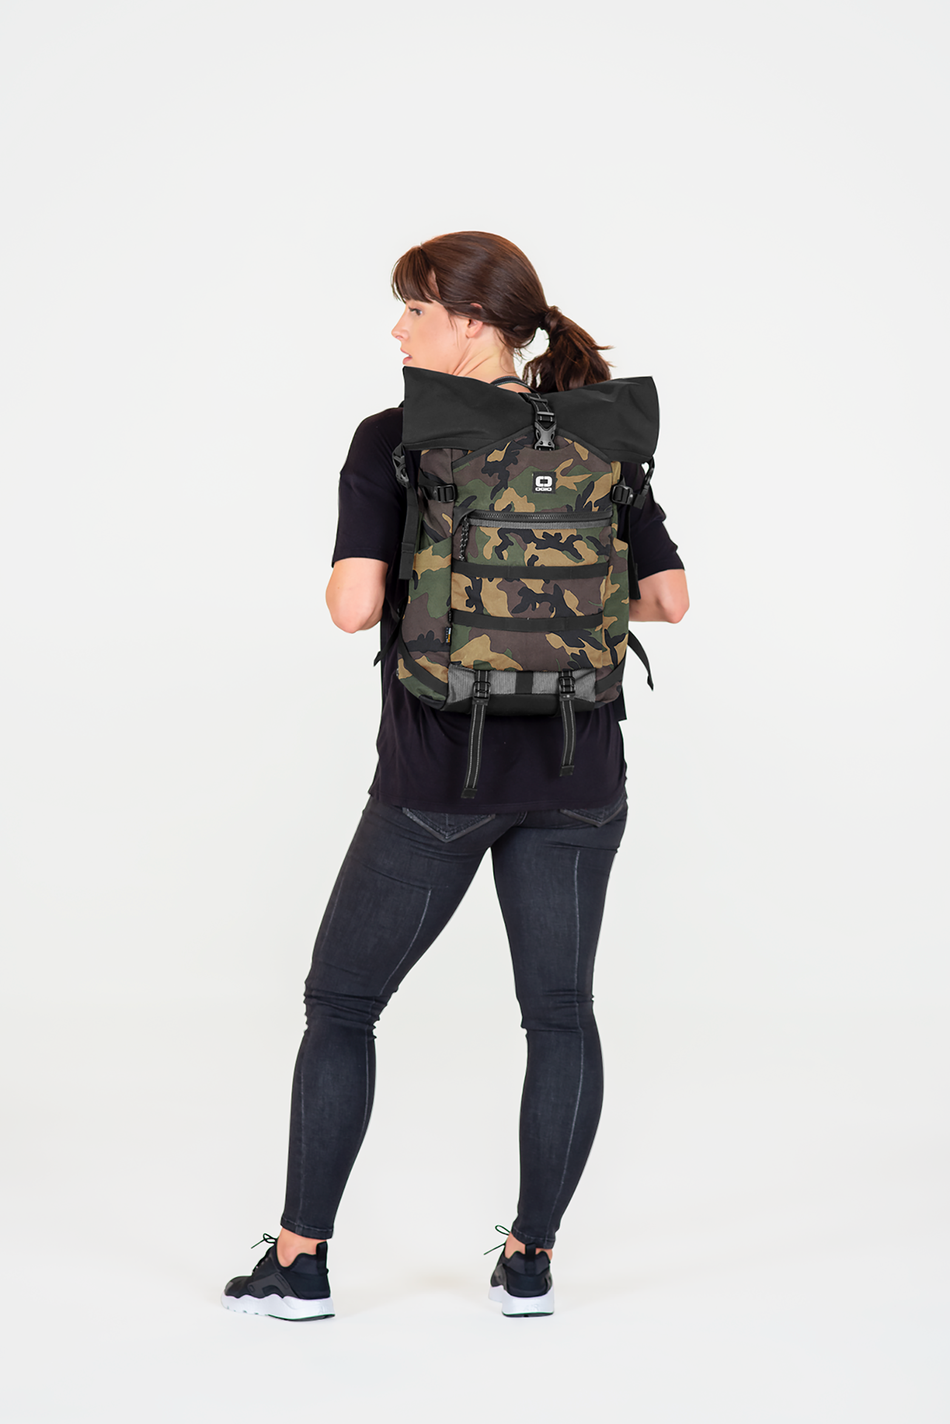 ALPHA Convoy 525r Backpack - View 9